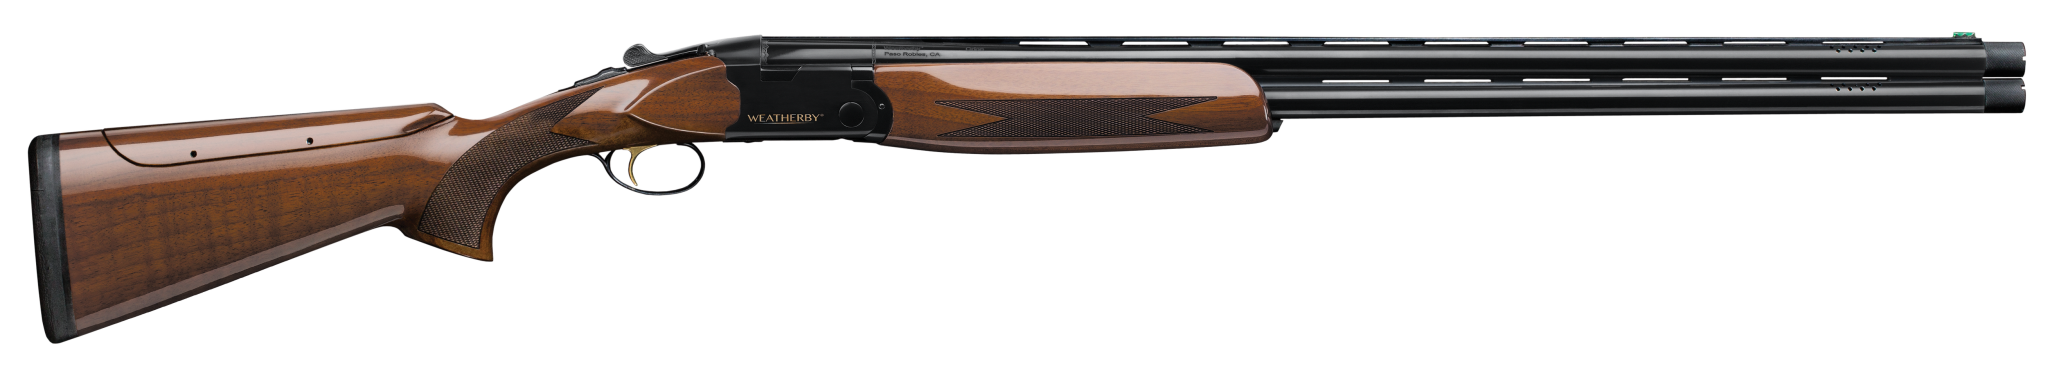 """Weatherby Weatherby Orion Sporting 12 Gauge 30"""" PORTED"""